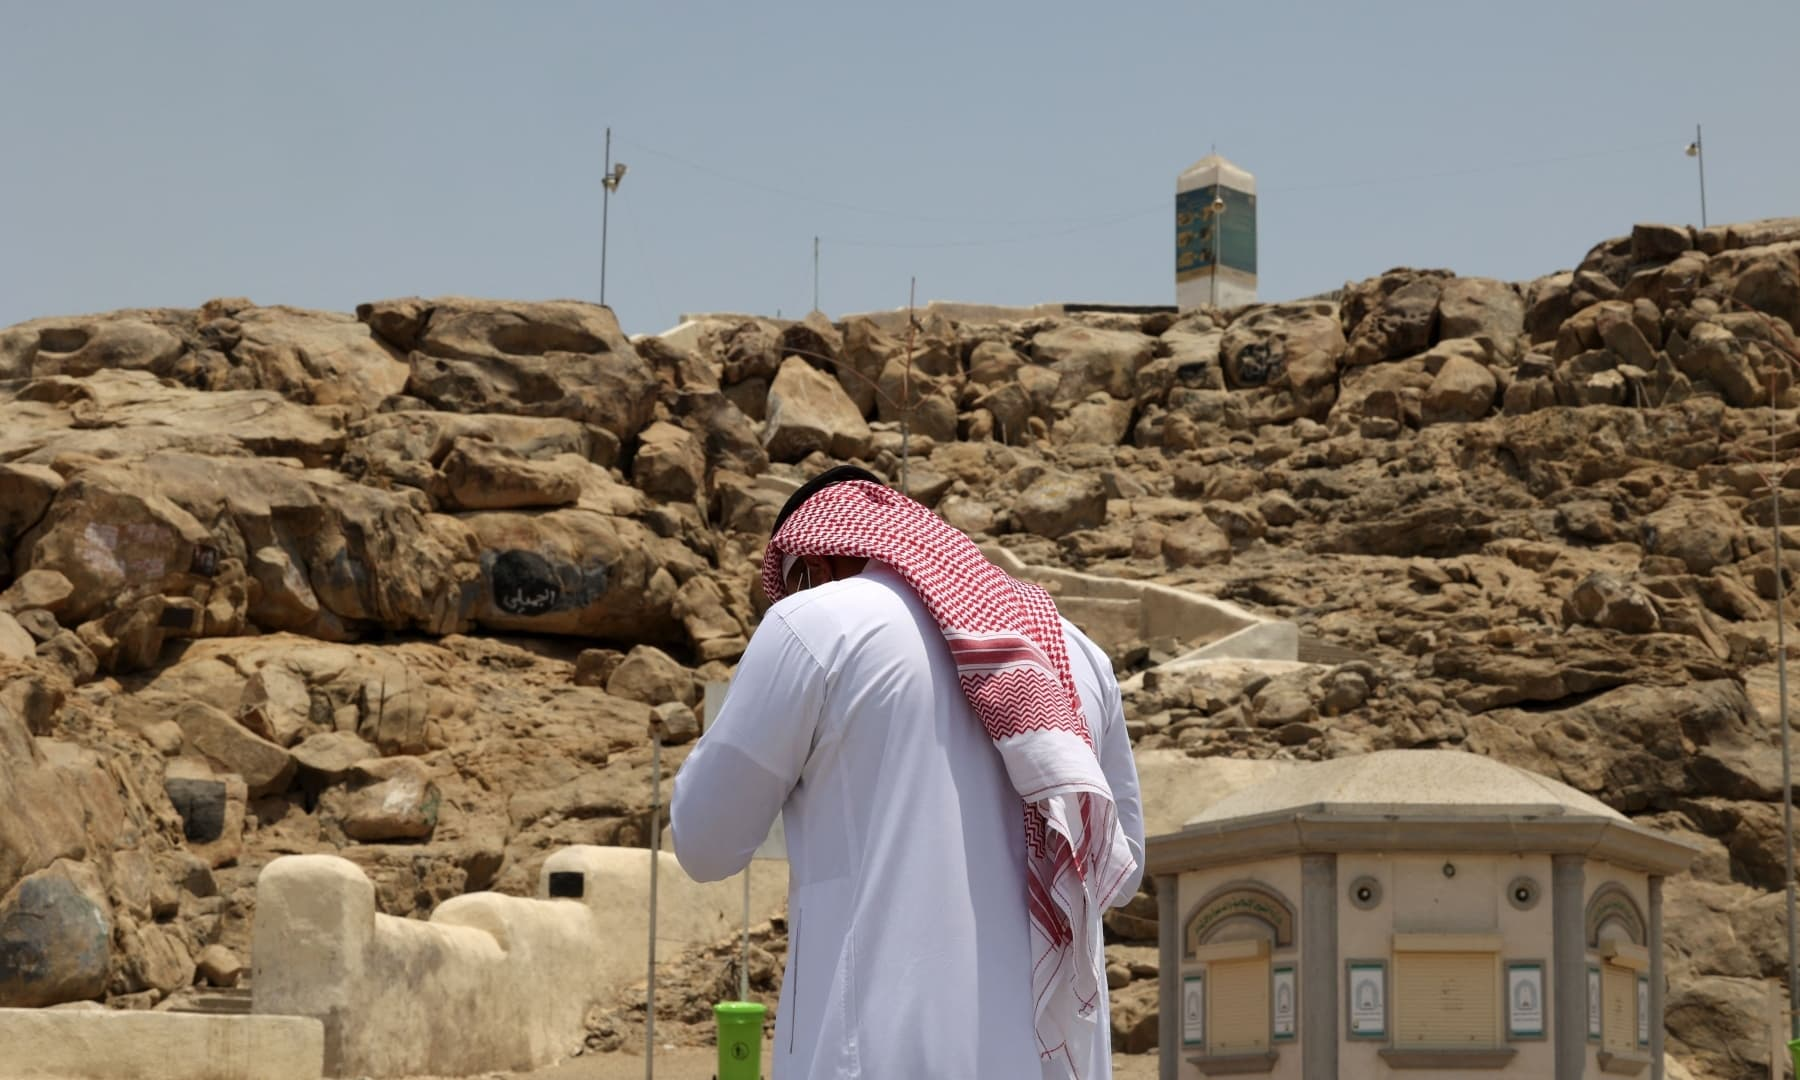 A Saudi man stands in front of Mount Arafat, southeast of the holy city of Makkah, Saudi Arabia, July 16, 2021. — AFP